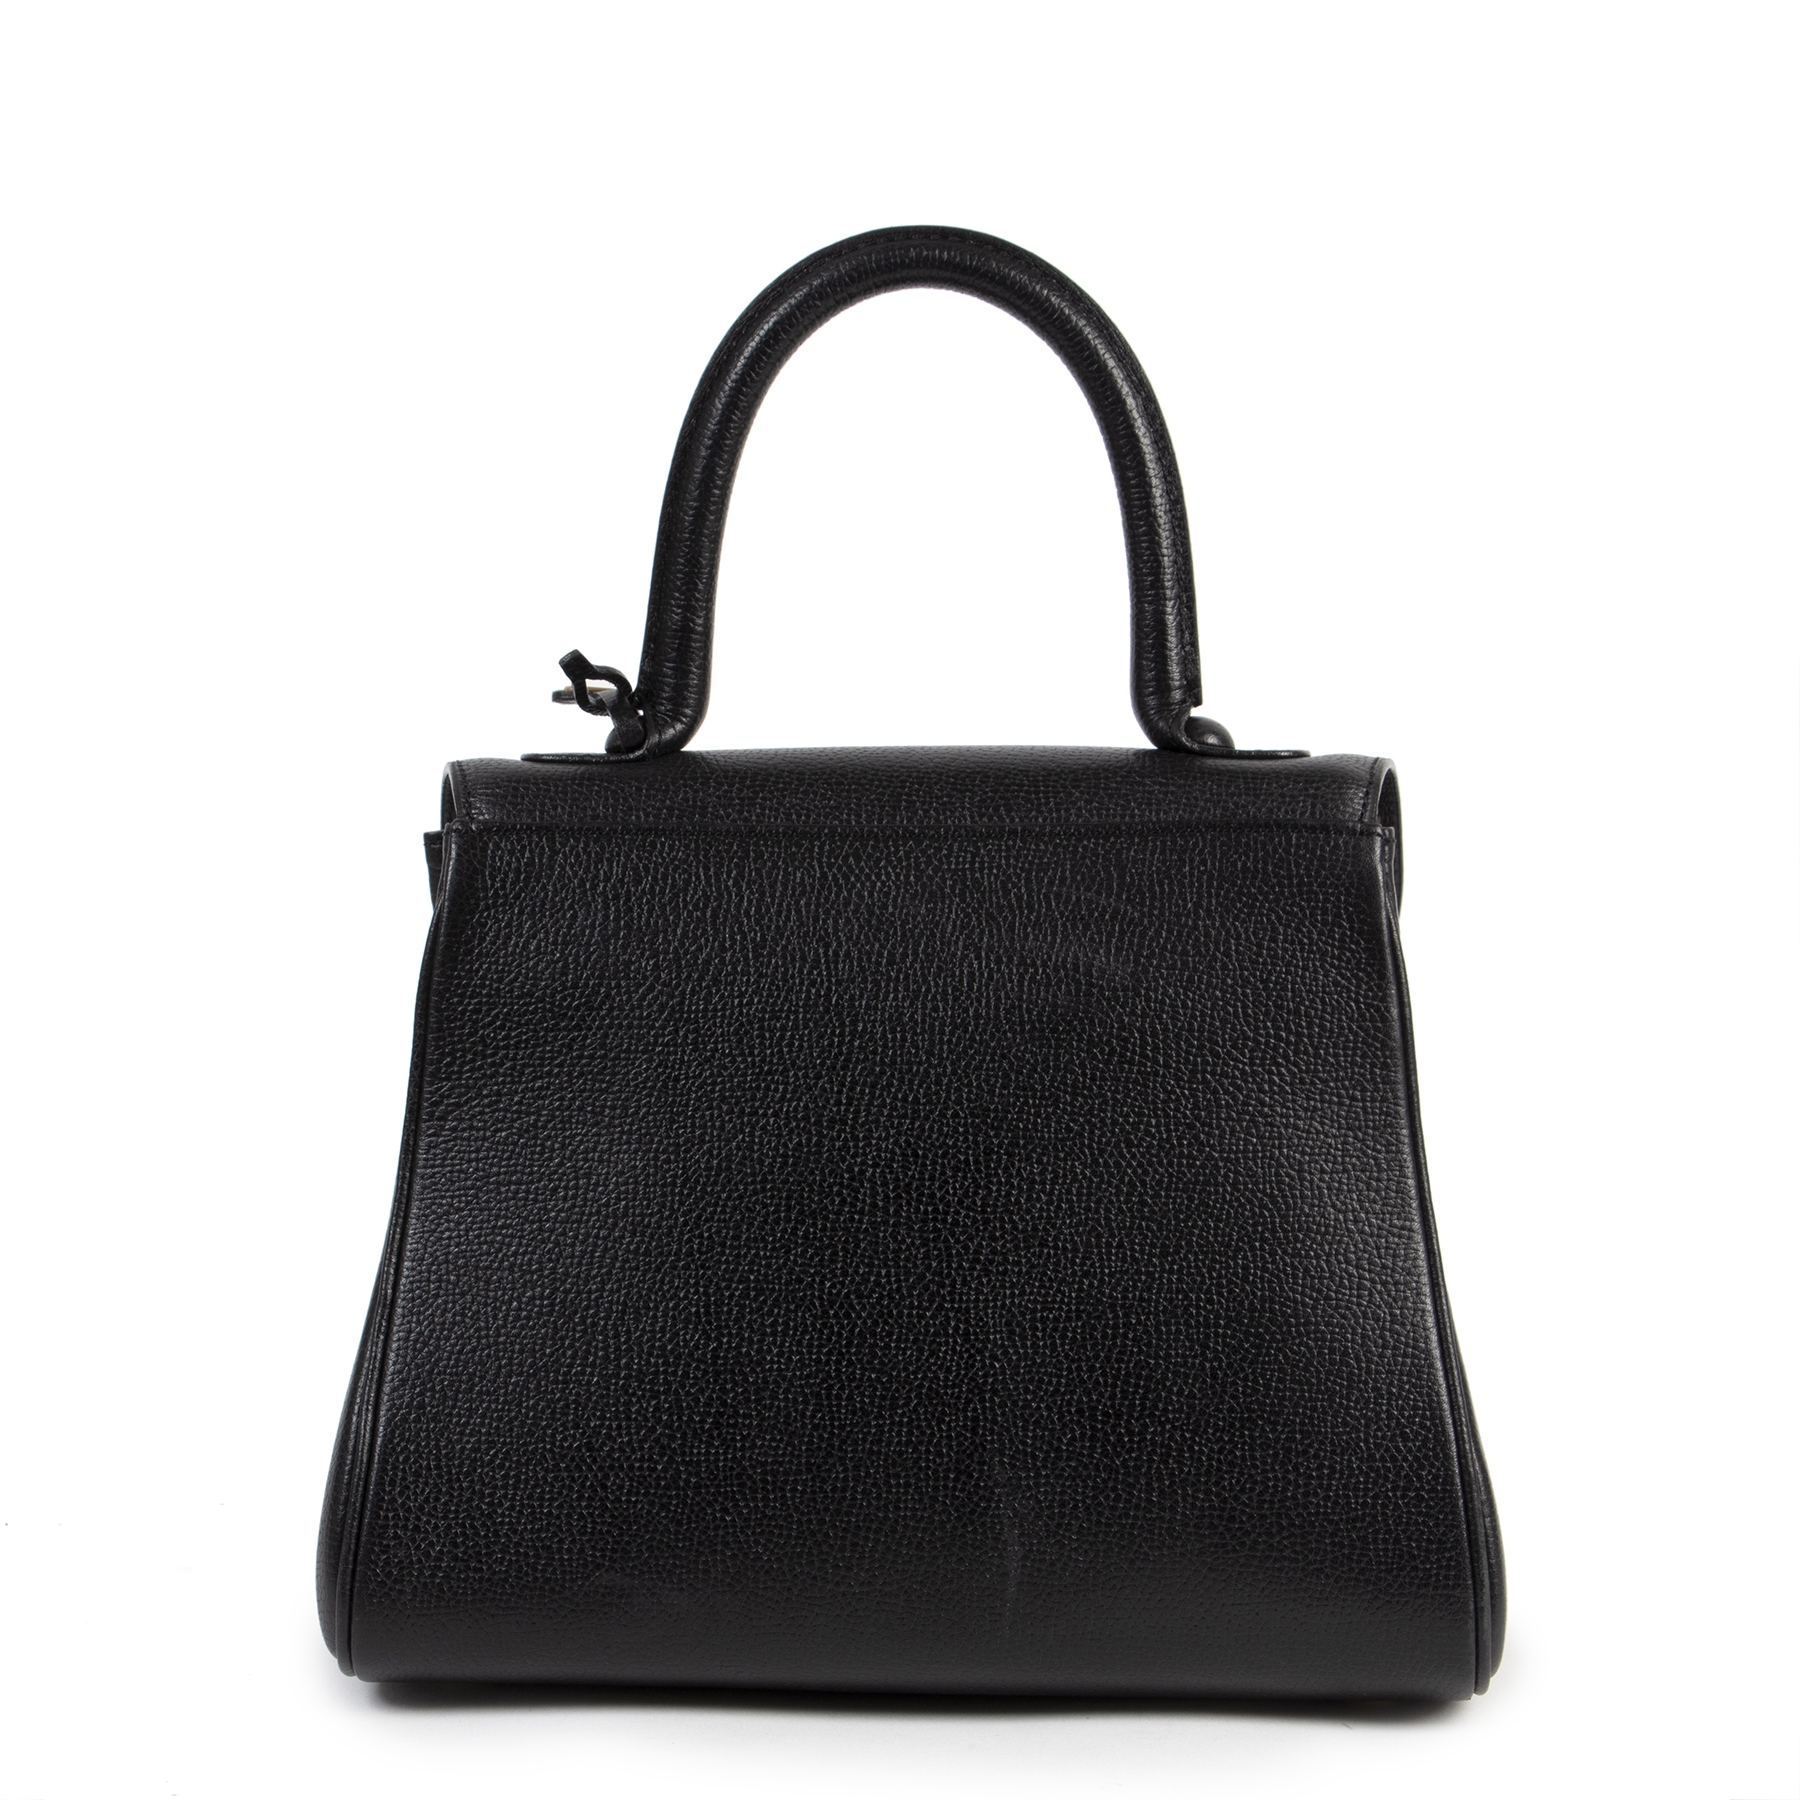 Authentieke tweedehands vintage Delvaux Black Brillant PM Bag koop online webshop LabelLOV